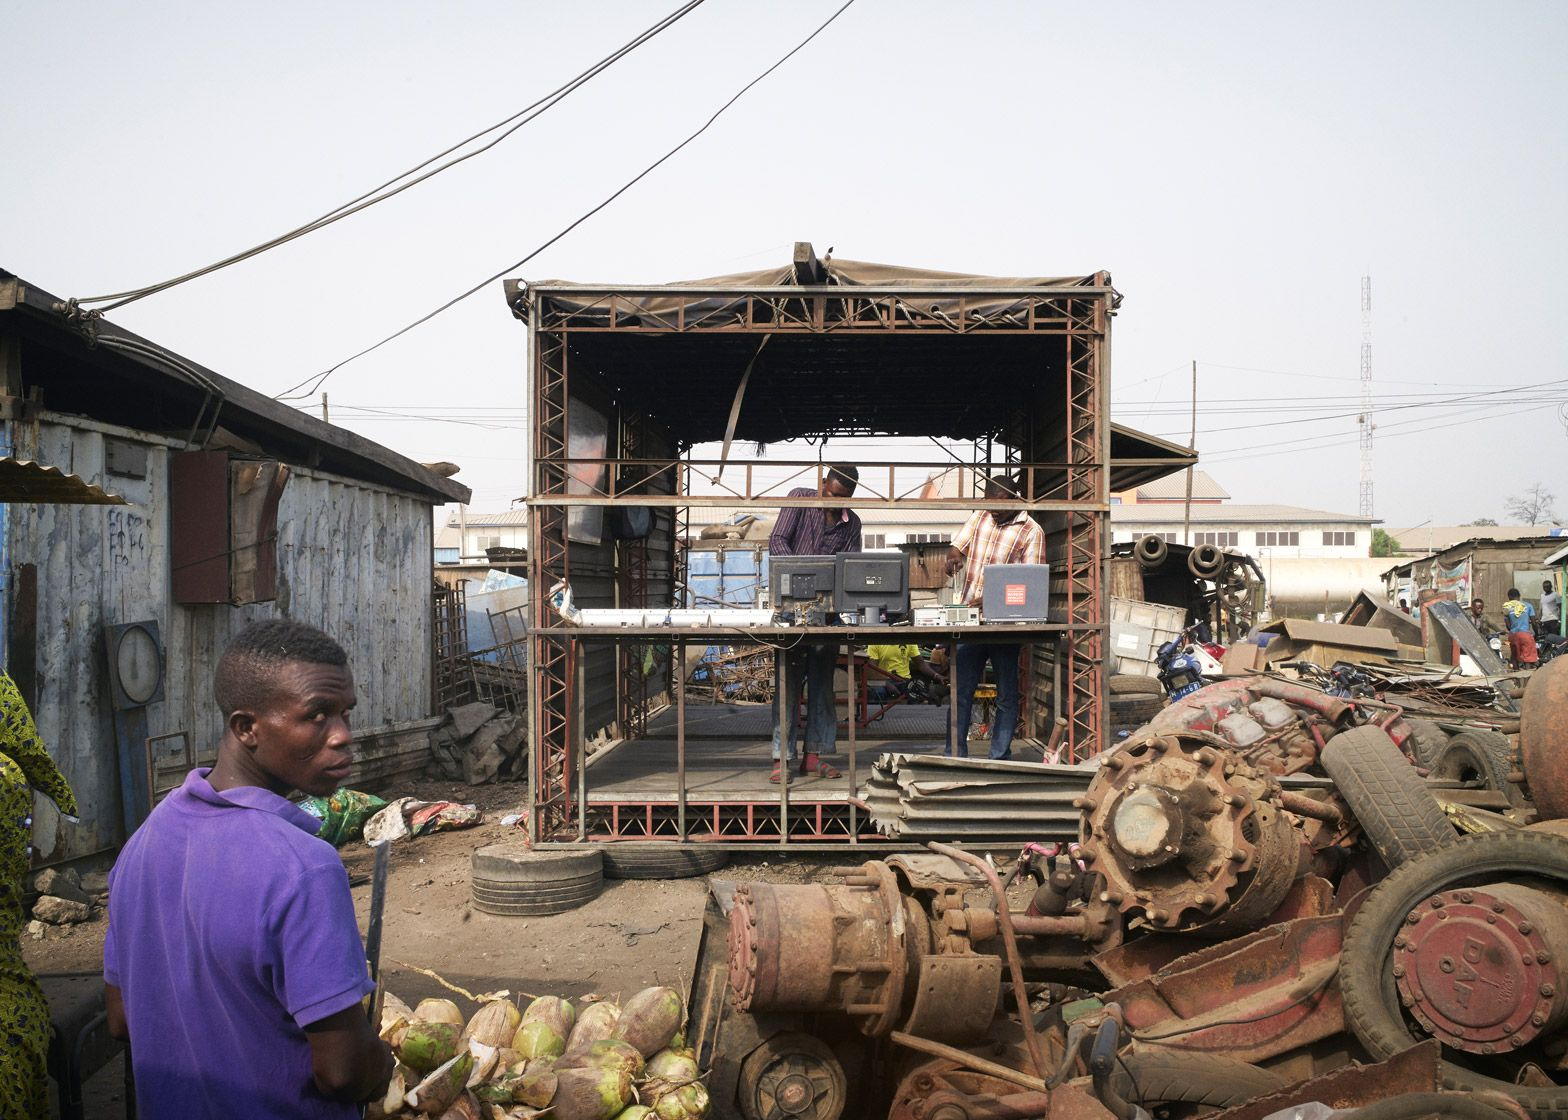 amp-spacecraft-makerspace-mobile-structures-agbogbloshie-ghana-worlds-largest-electrical-waste-dump-africa-potential-micro-industry-platforms-low-design-office_dezeen_1568_5.jpg